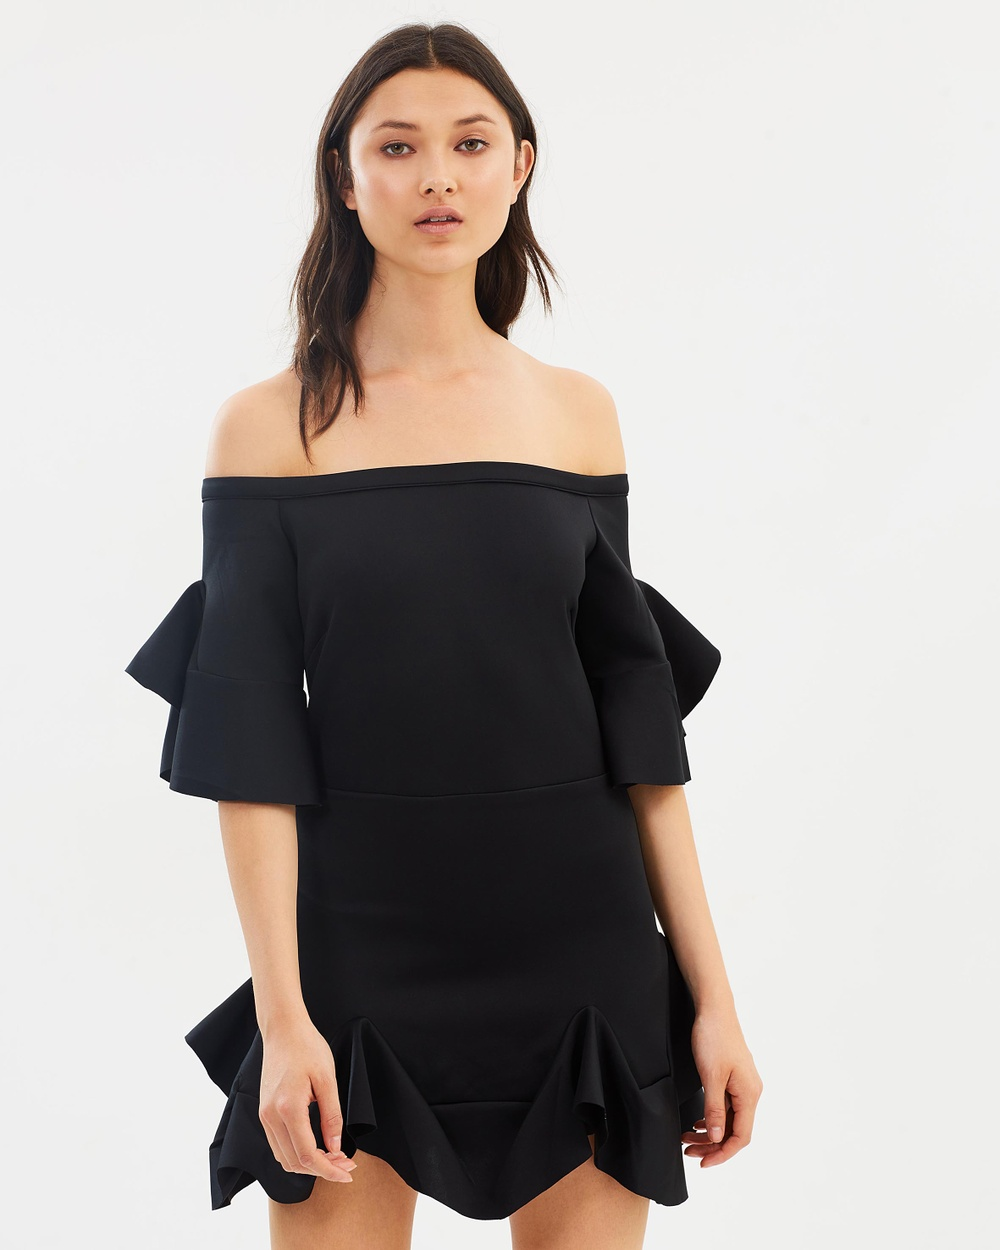 Maurie & Eve Jager Dress Dresses Black Jager Dress